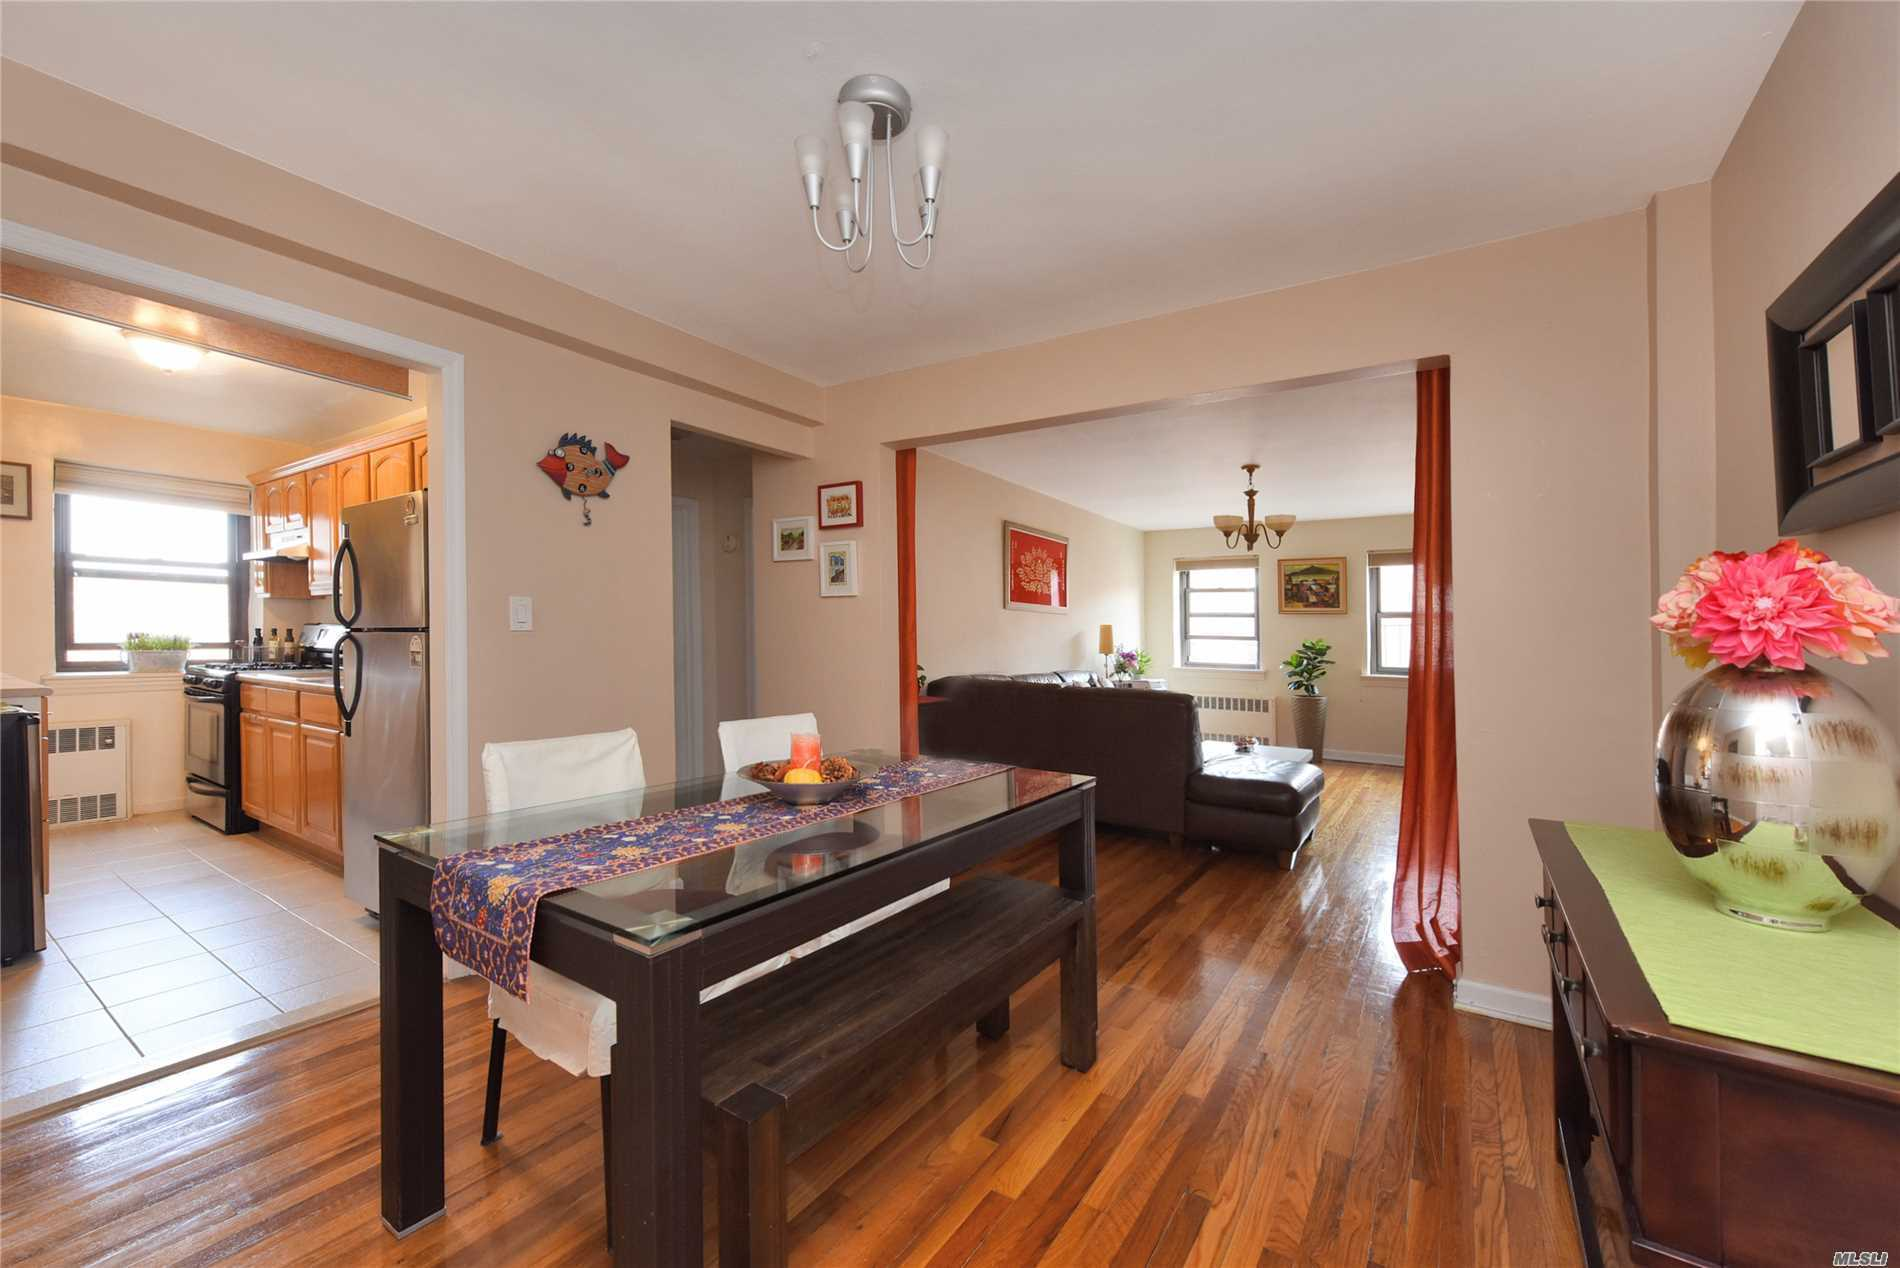 102-35 67th Rd, 6L - Forest Hills, New York